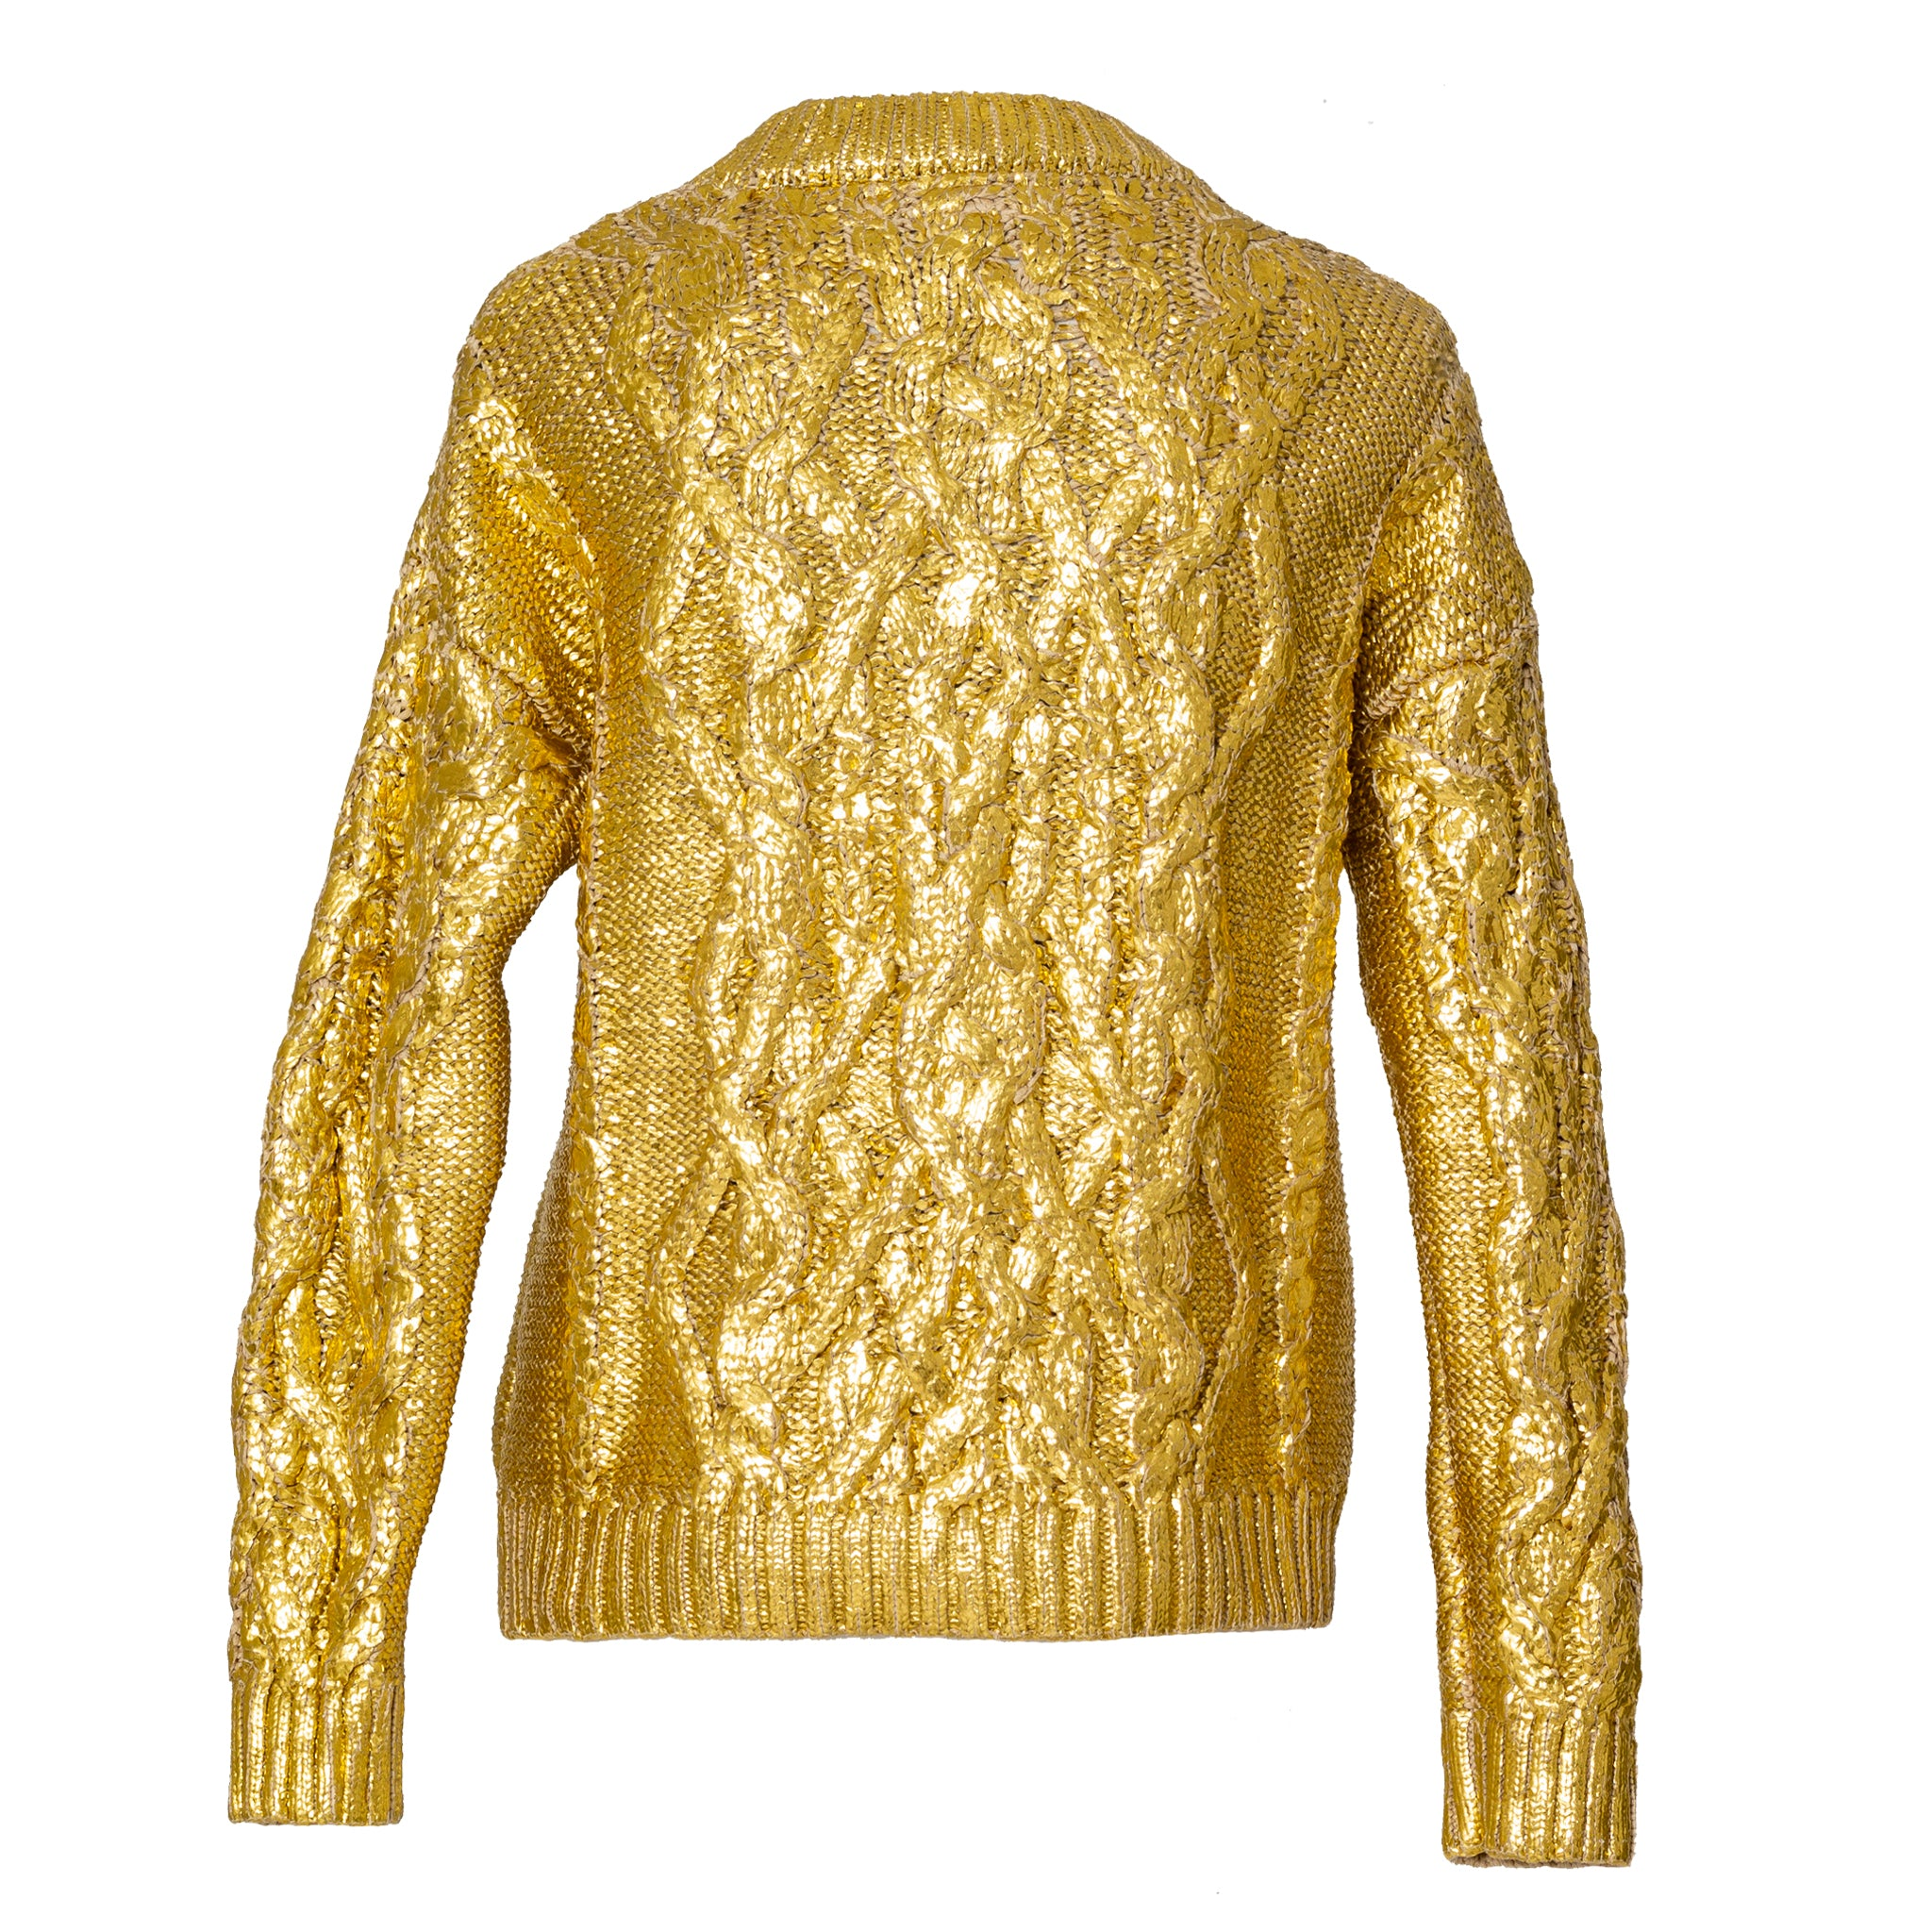 Gold Shiny Sweater